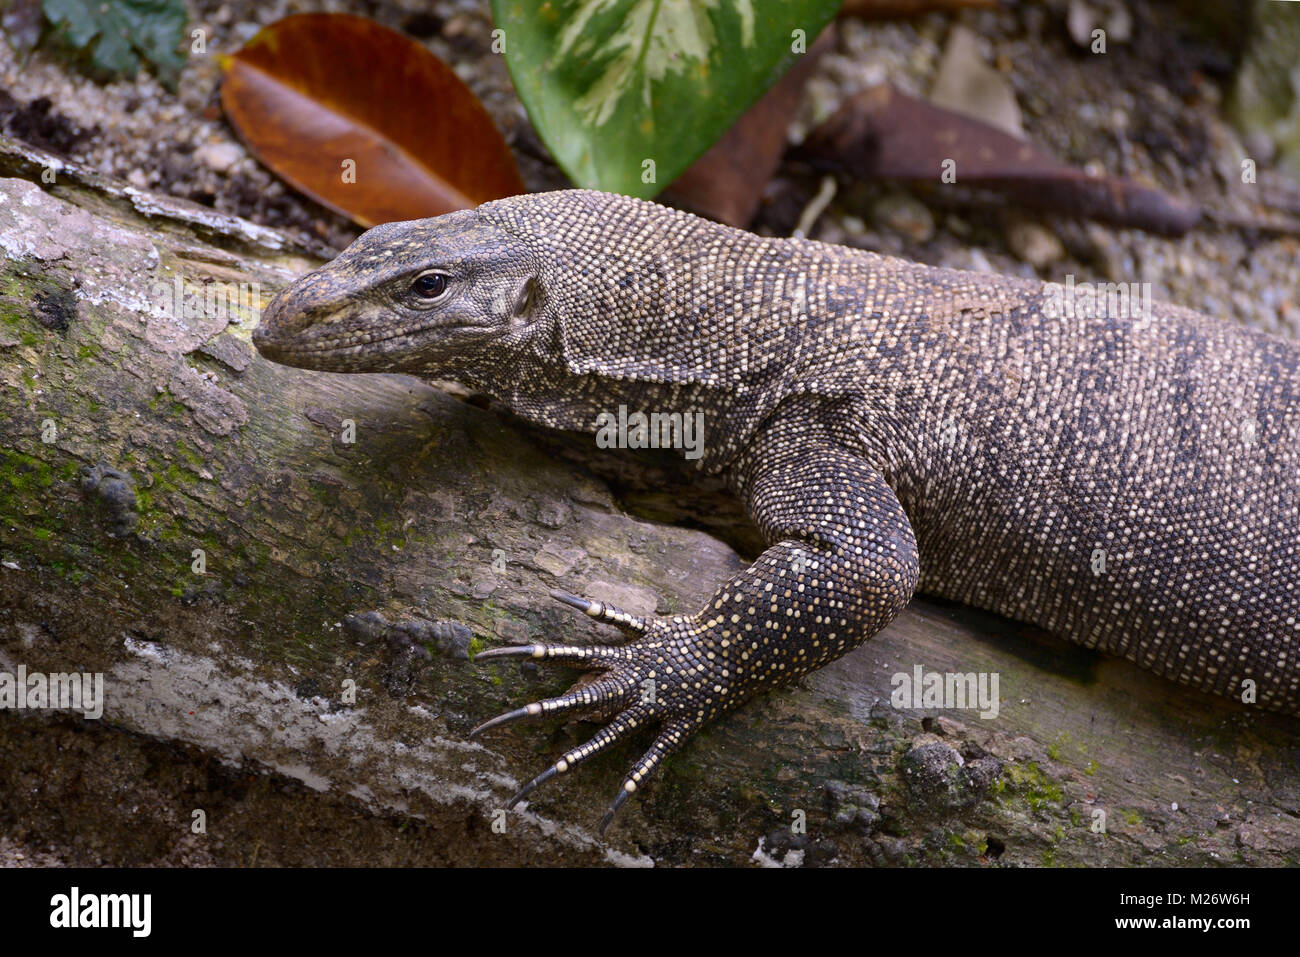 Portrait of clouded monitor lizard - Stock Image